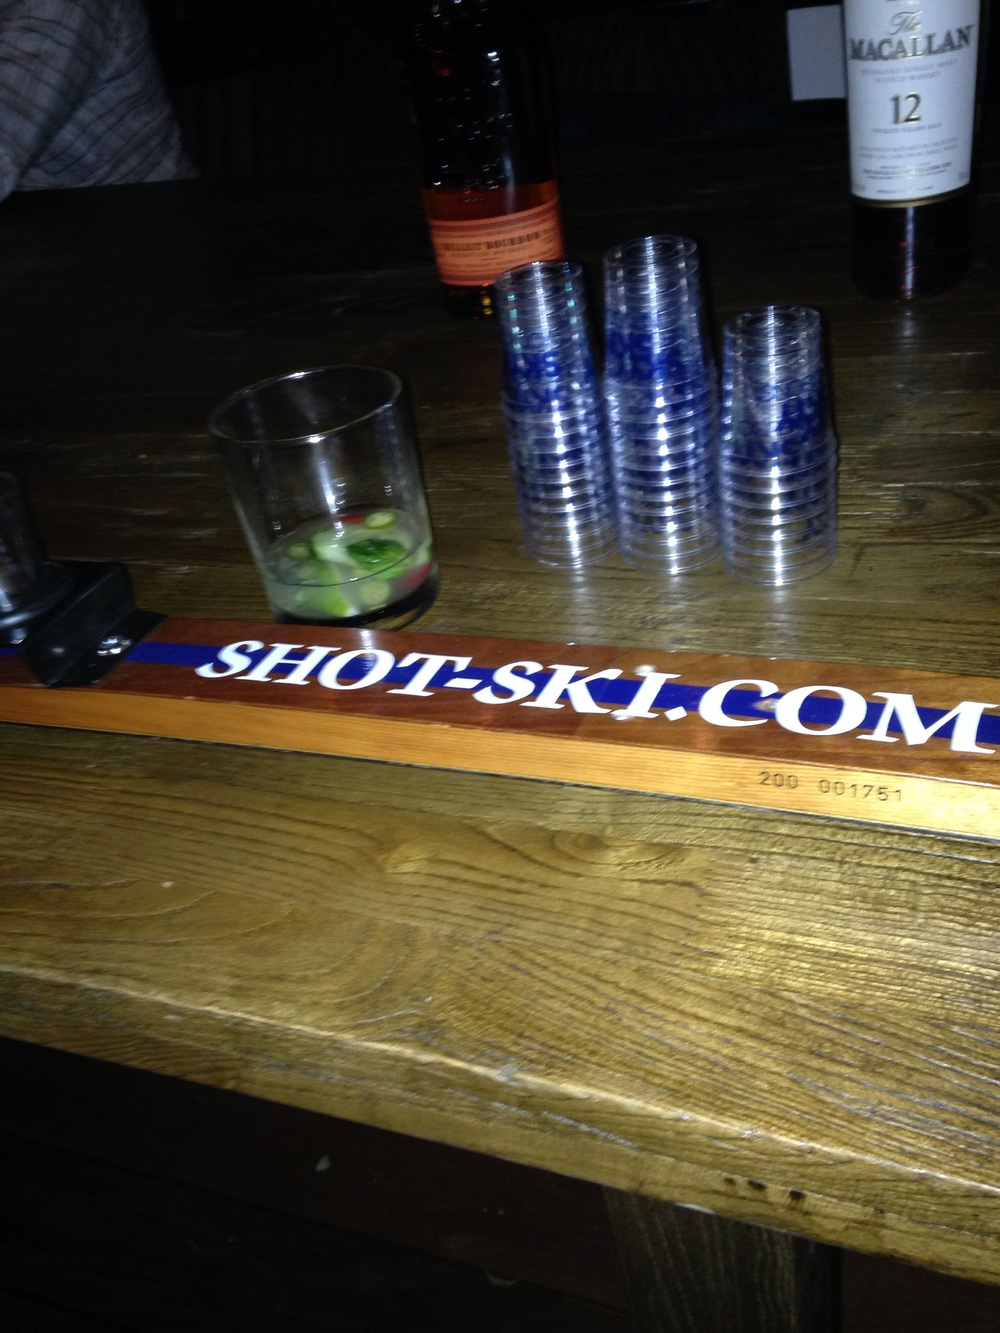 ....but need a lil' liquid courage from the ol' shot-ski.....yewwwww!